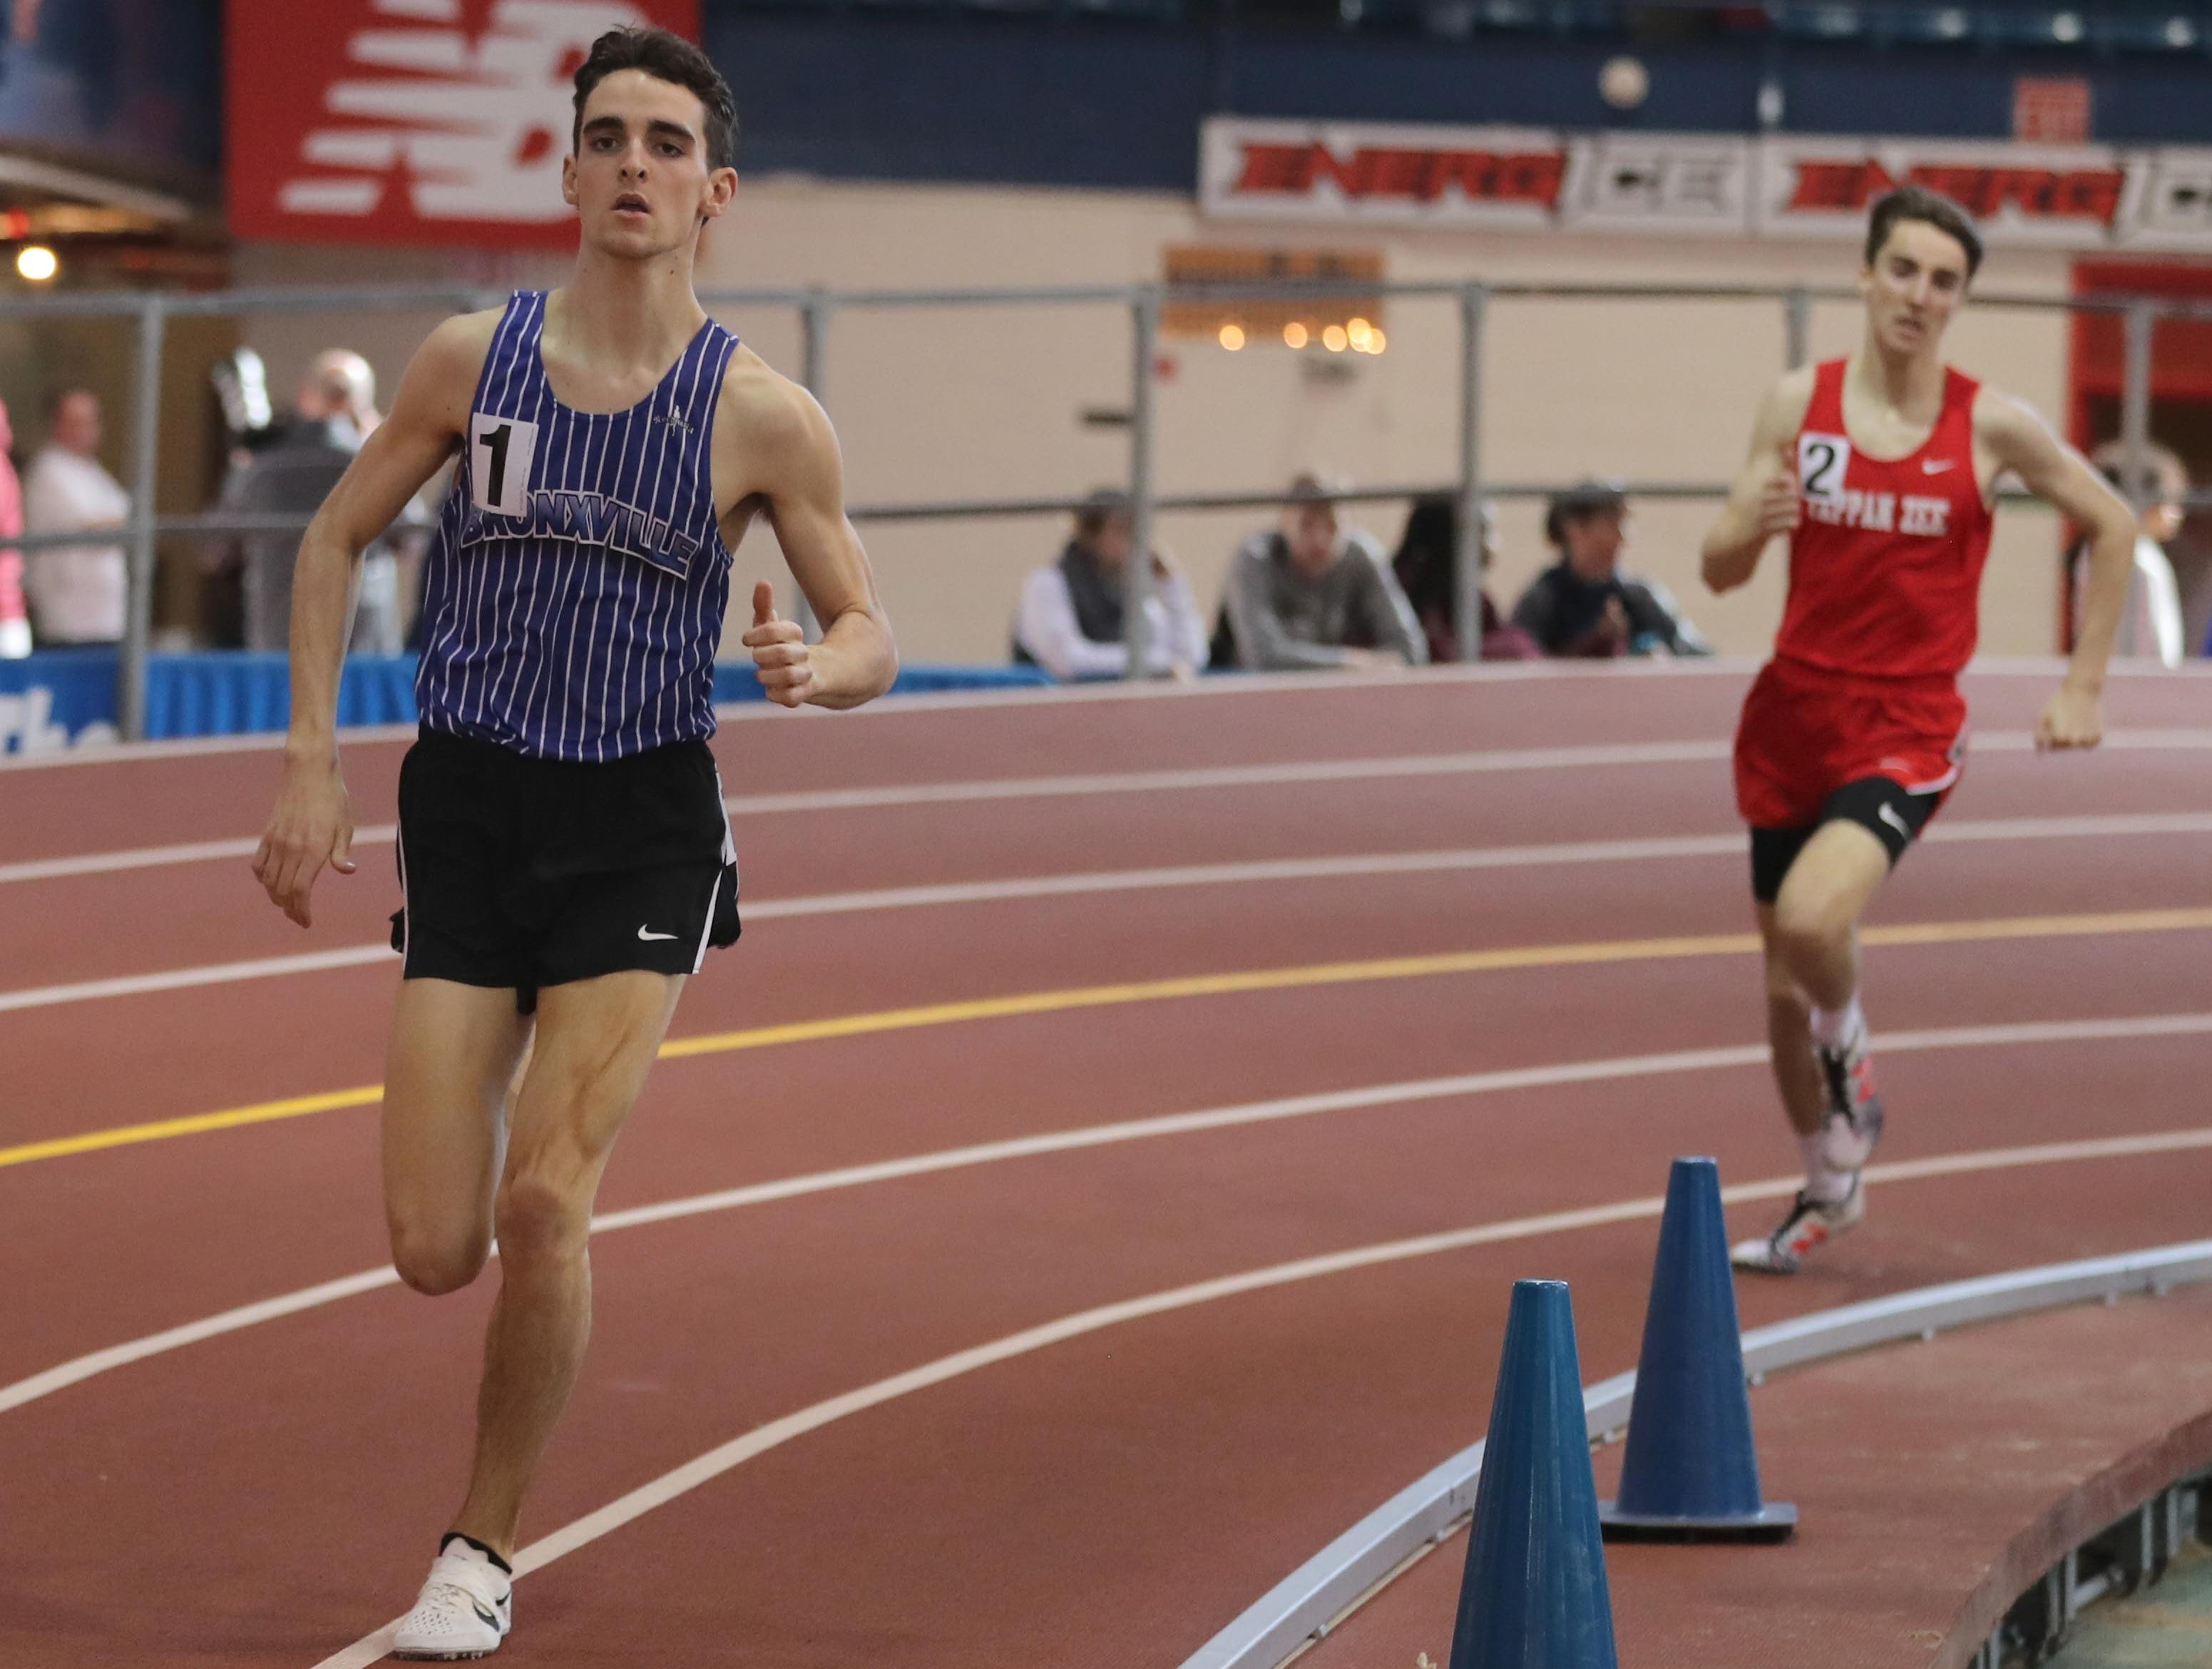 Matthew Rizzo of Bronxville won the 1000 meter race at the Section 1 New York State Track and Field State Qualifier at the New Balance Armory in Manhattan Feb. 17, 2019.